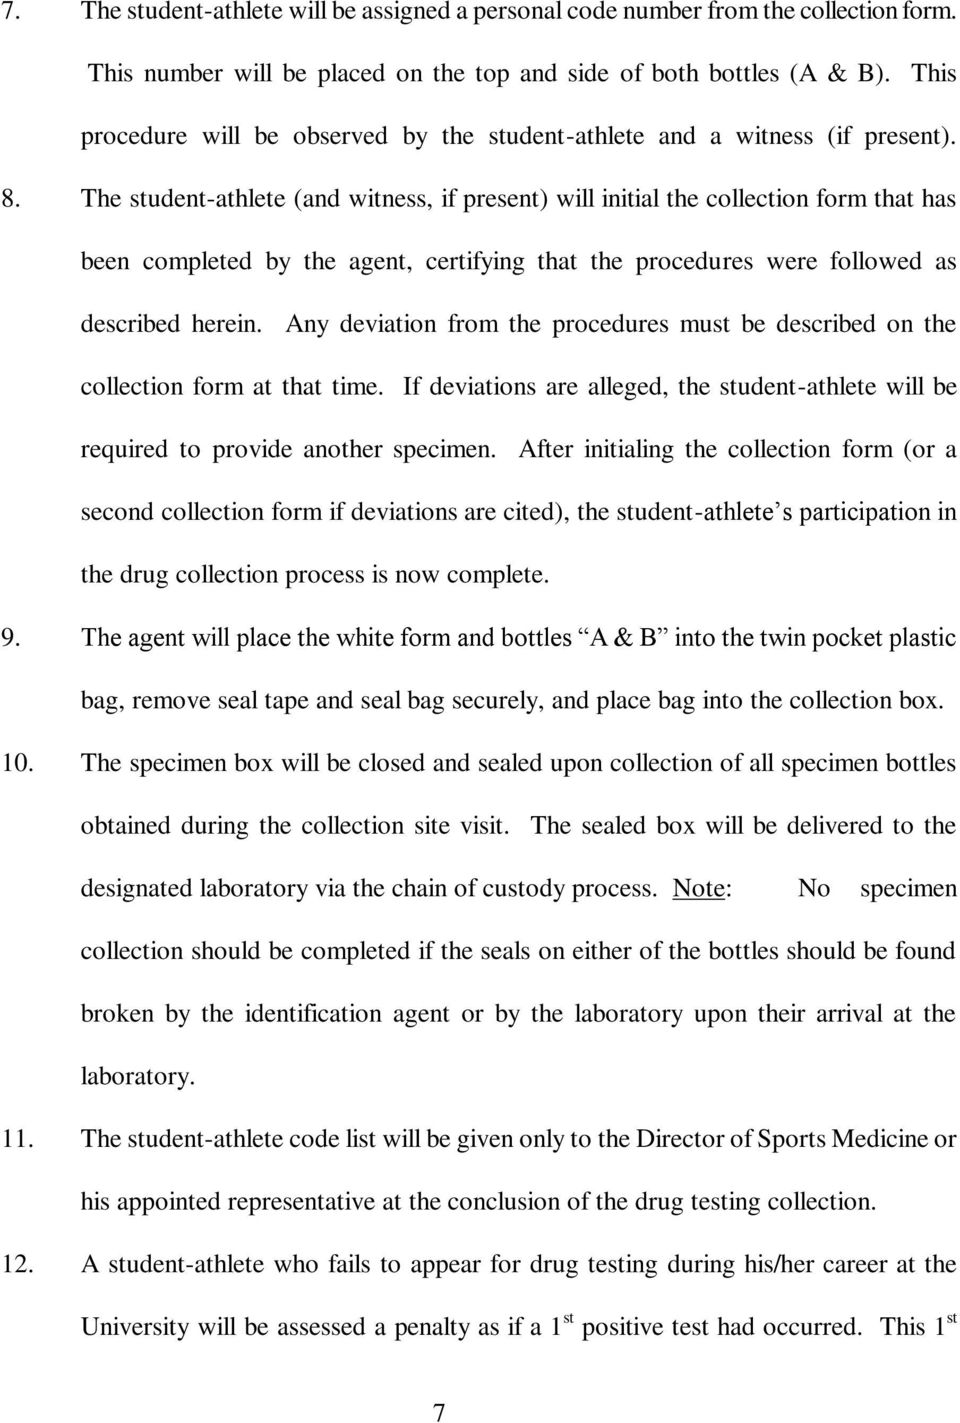 The student-athlete (and witness, if present) will initial the collection form that has been completed by the agent, certifying that the procedures were followed as described herein.